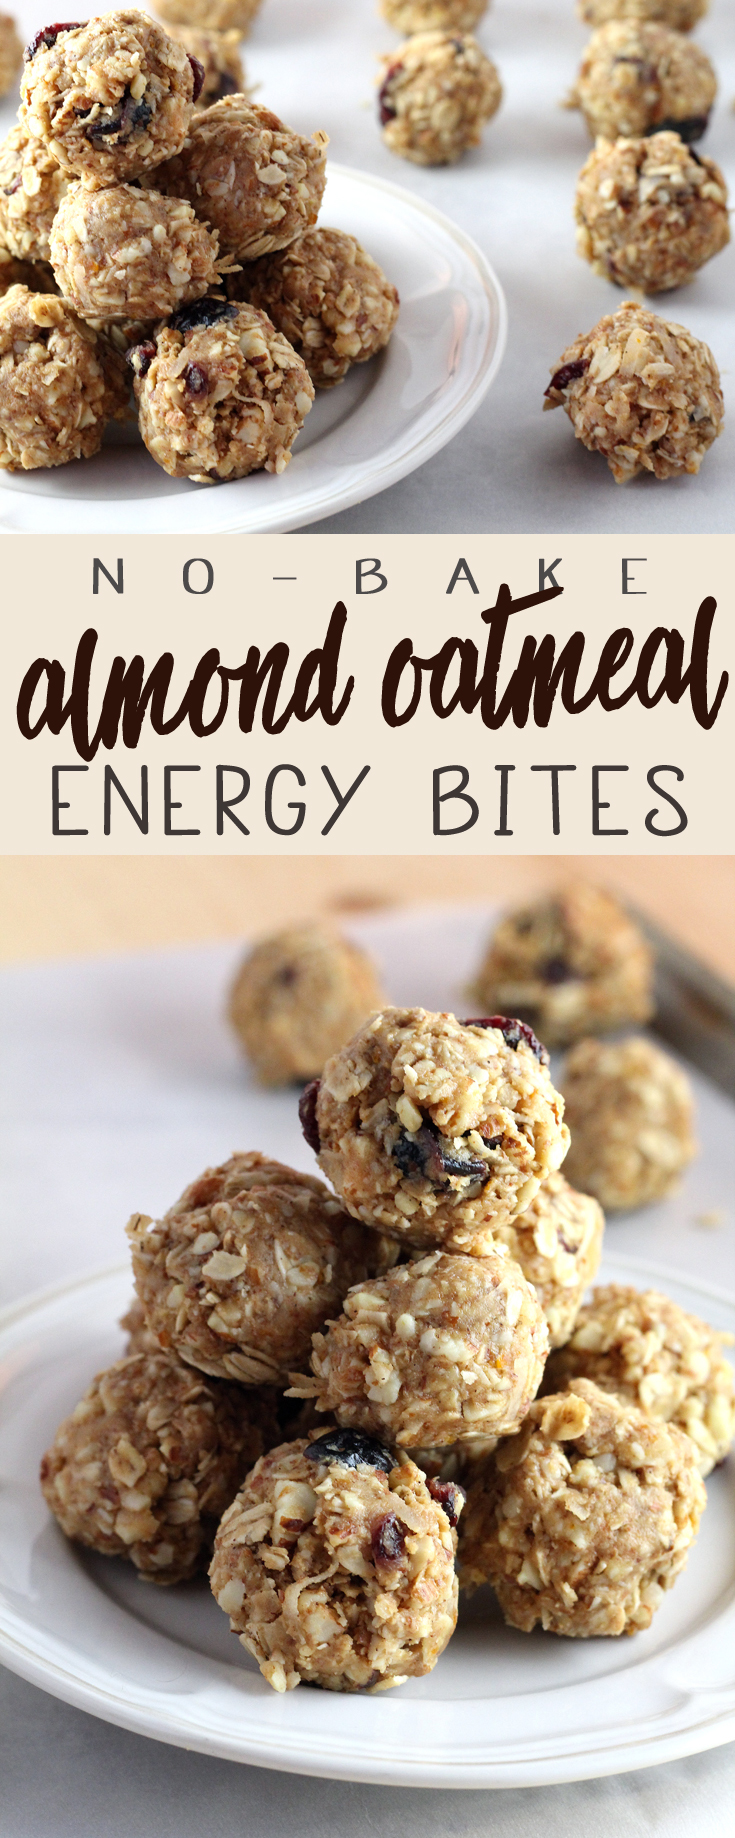 Almond Oatmeal No Bake Energy Bites are going to be your new breakfast BFF. These lovely little munchies are a grab-and-go delight that will fit right into your morning routine. #energybites #hairhealthy